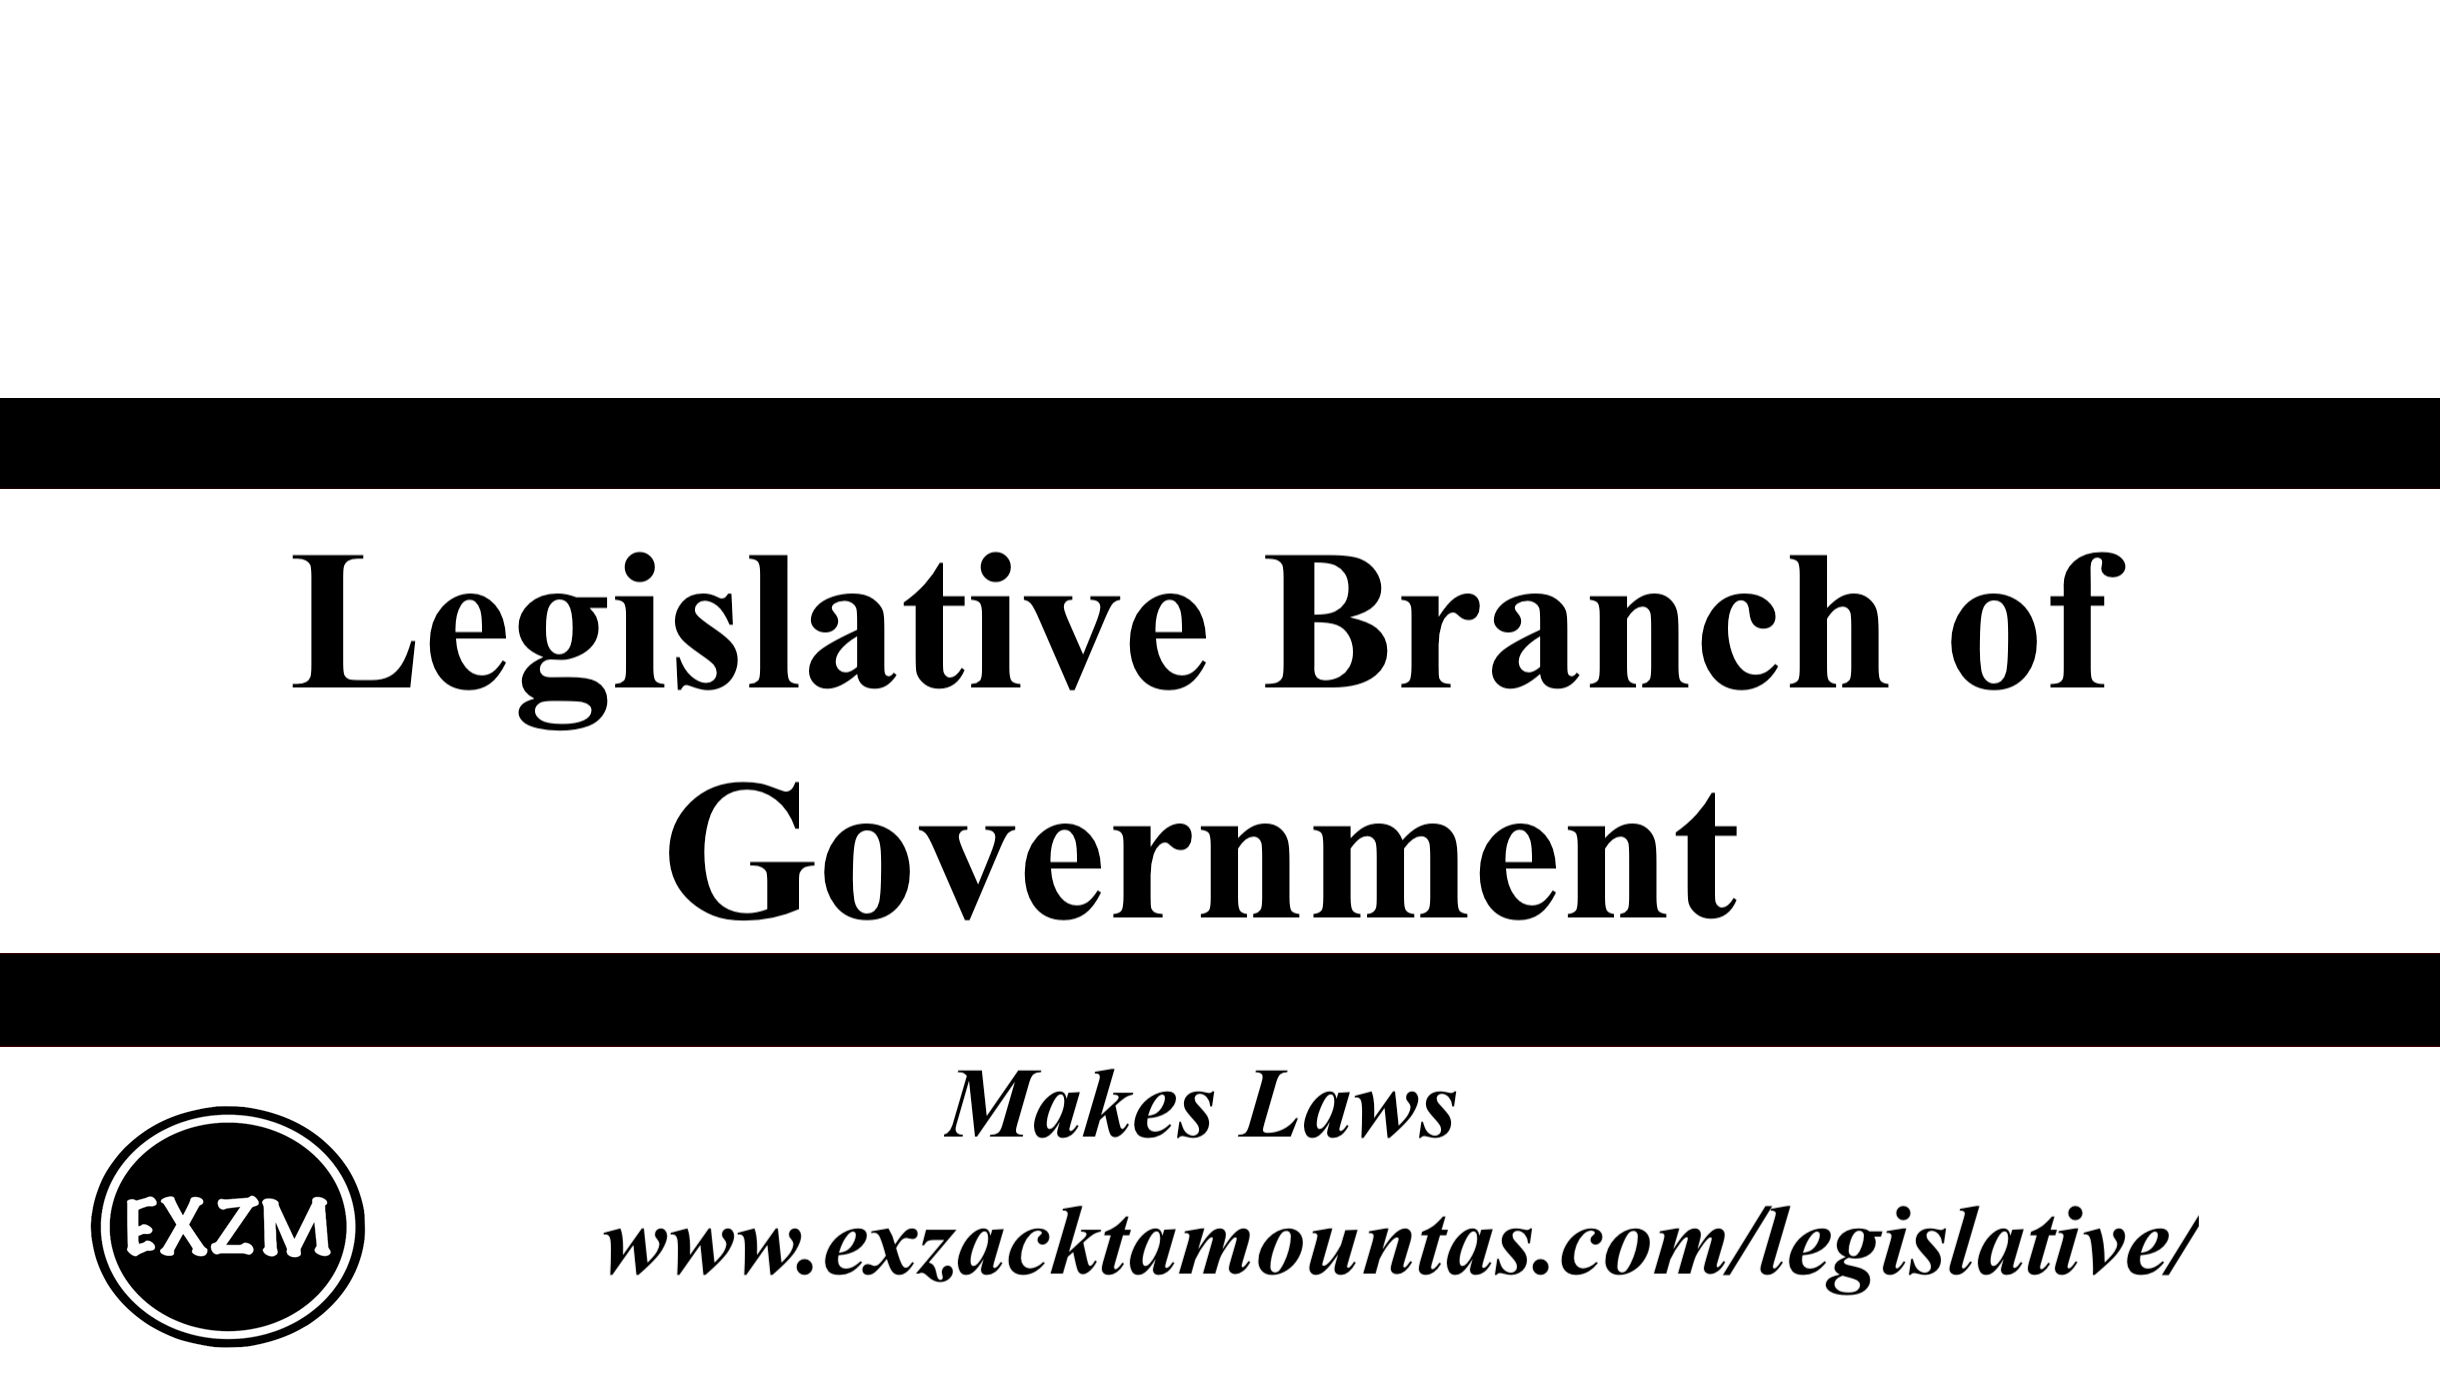 Legislative Branch of Gov EXZM 9 30 2019